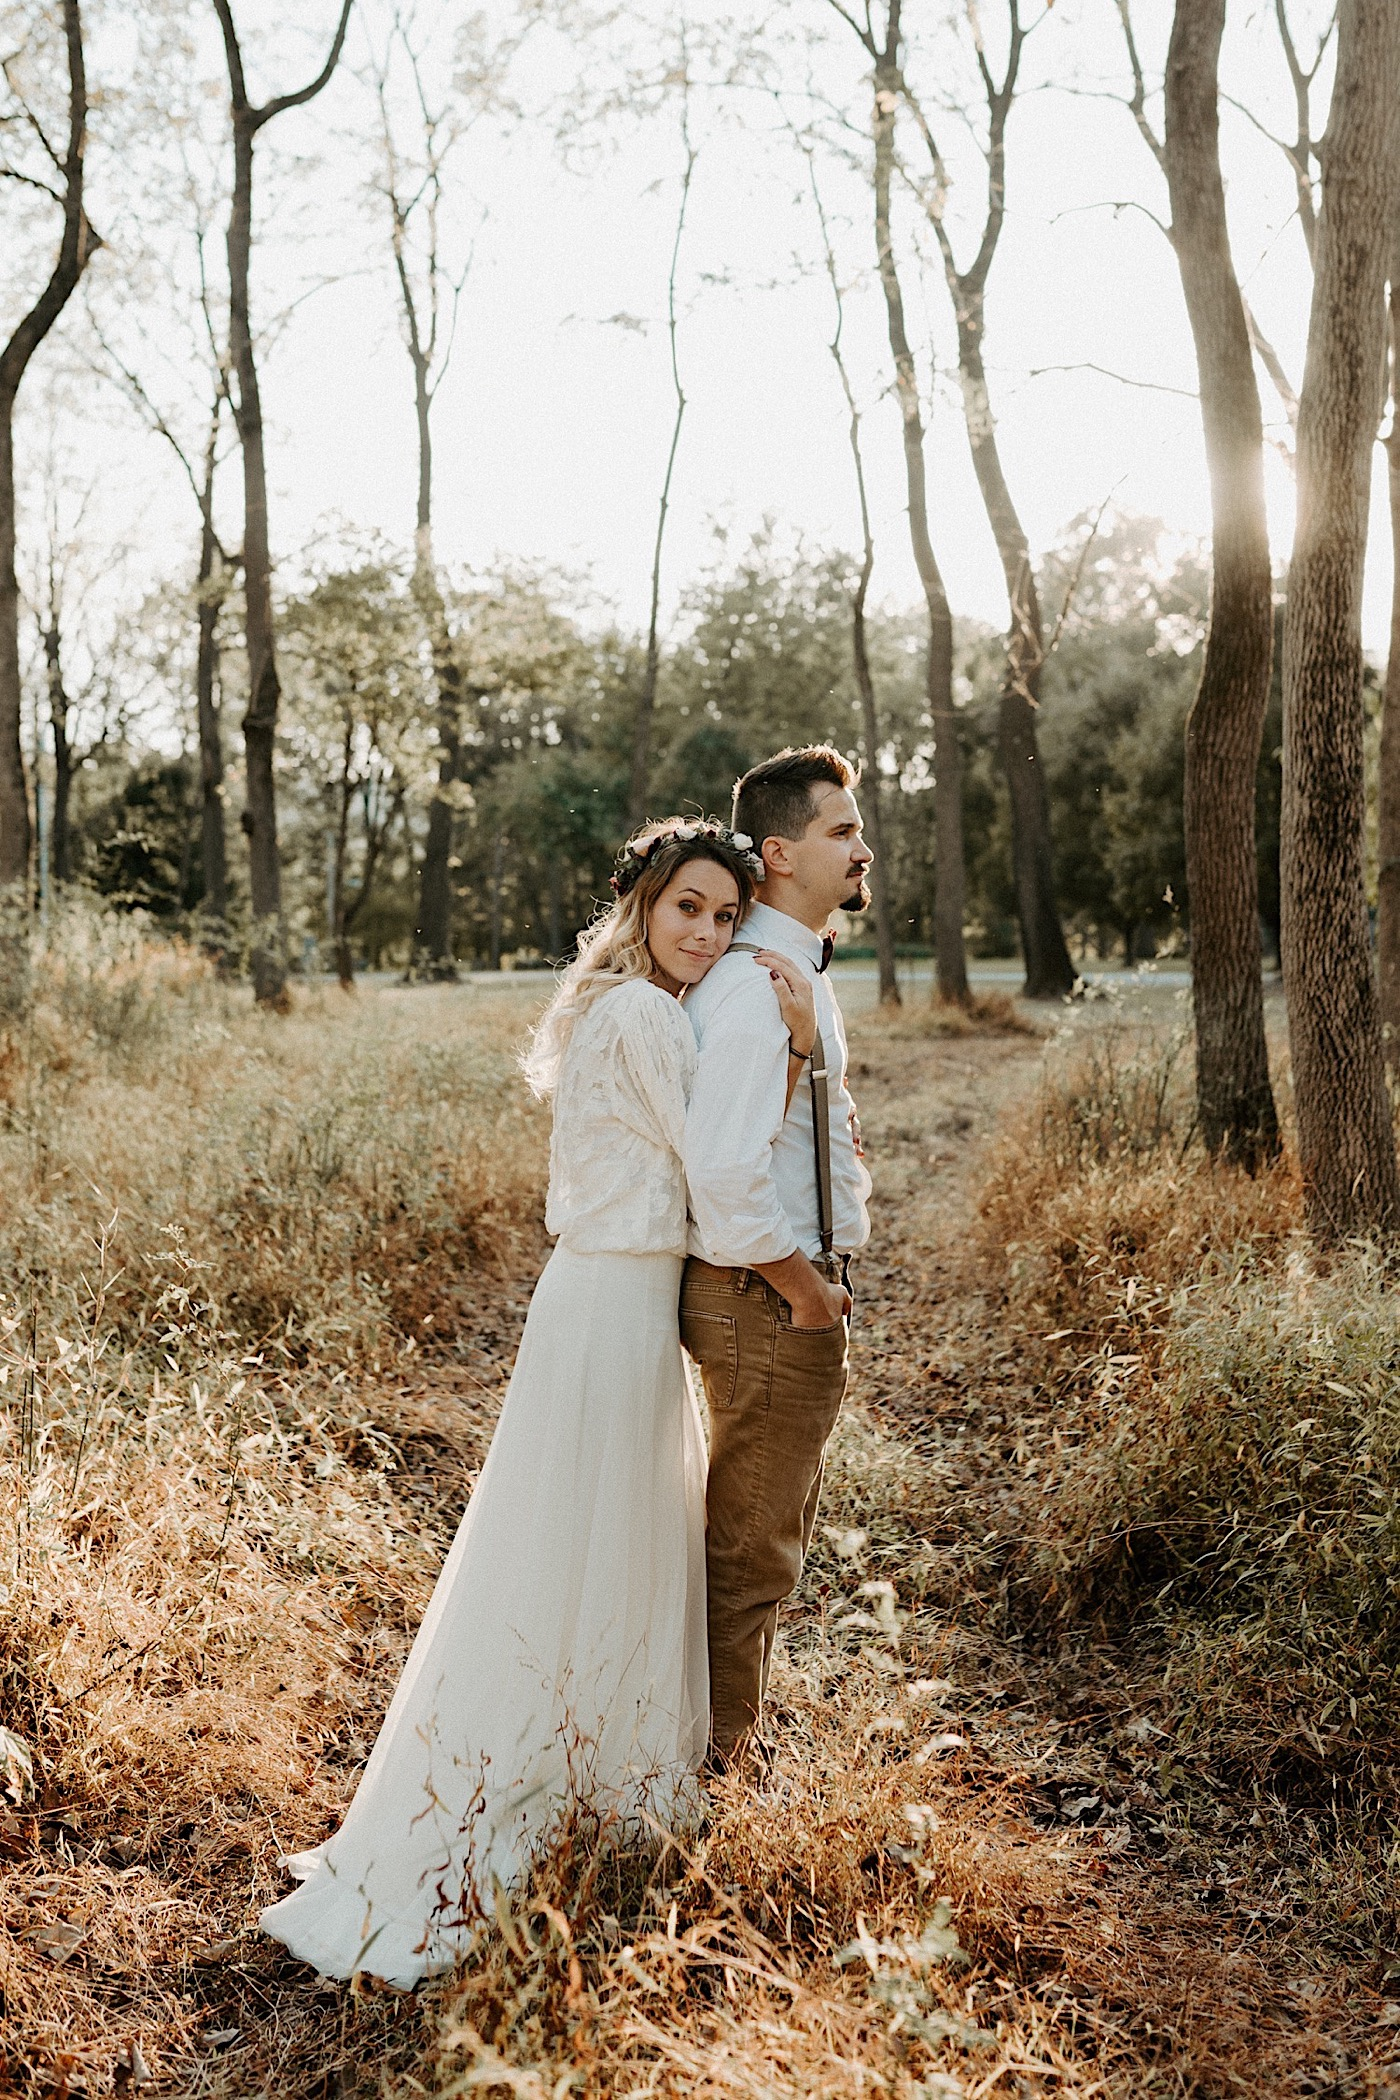 Woolverton Inn Elopement NJ Wedding Photographer Boho Wedding 038